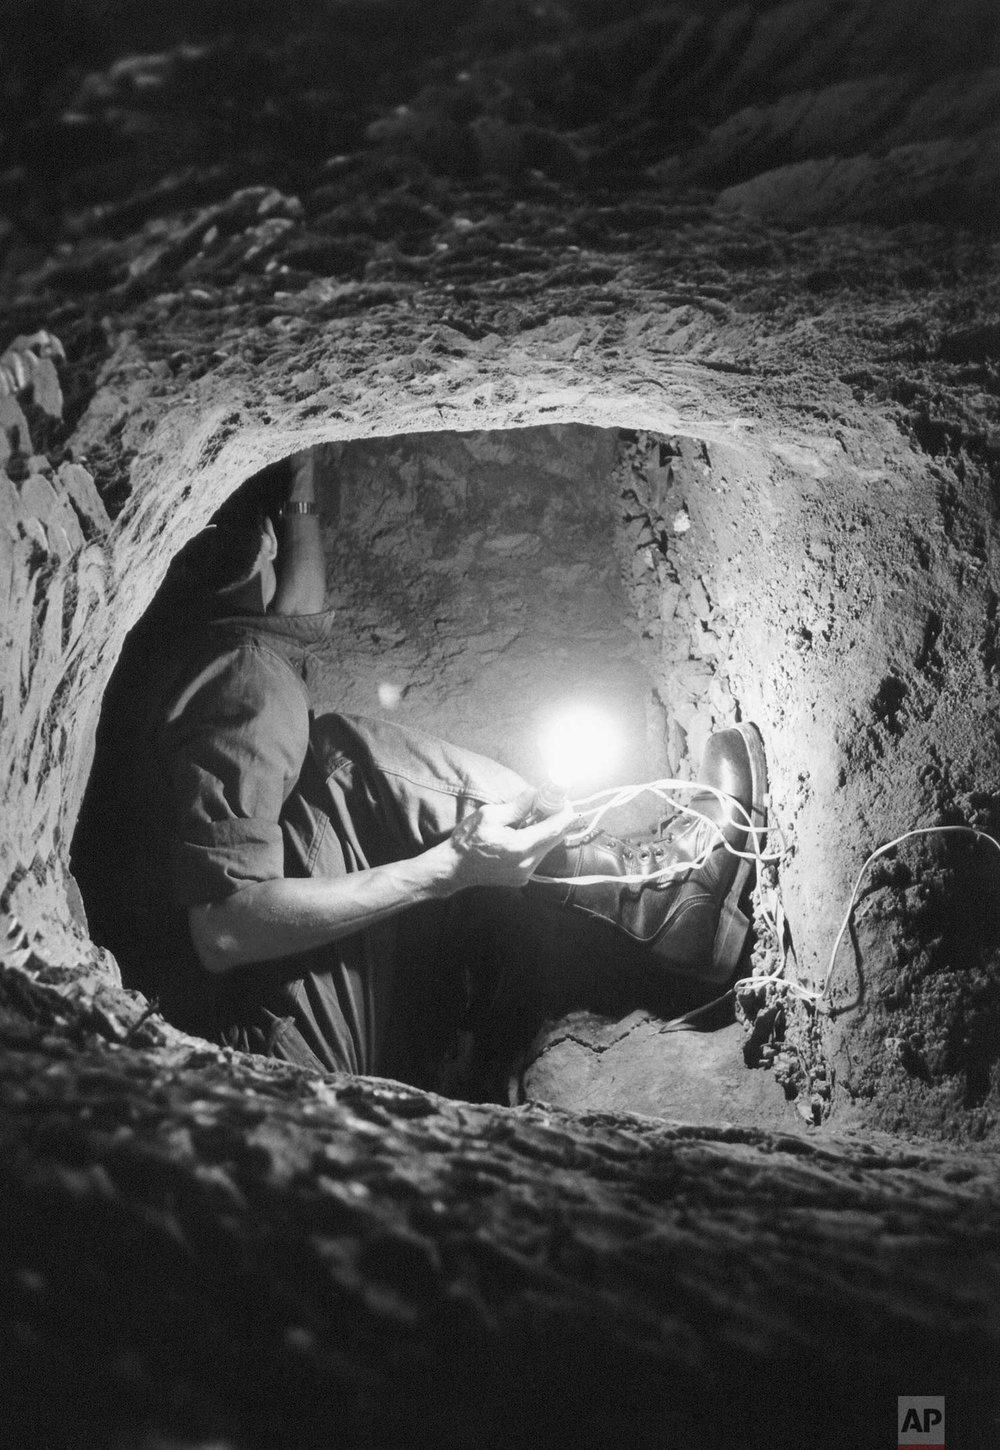 A Vietnamese national policeman holds a lightbulb as he crawls through a tunnel and bunker network leading from pagoda grounds to an outside entrance in the Gia Dinh province on the outskirts of Saigon, March 3, 1968. It is thought that the system was used by the Viet Cong to infiltrate men into the area in the Tet Offensive. The bunker itself is capable of holding up to twelve persons. (AP Photo/Le Ngoc Cung)